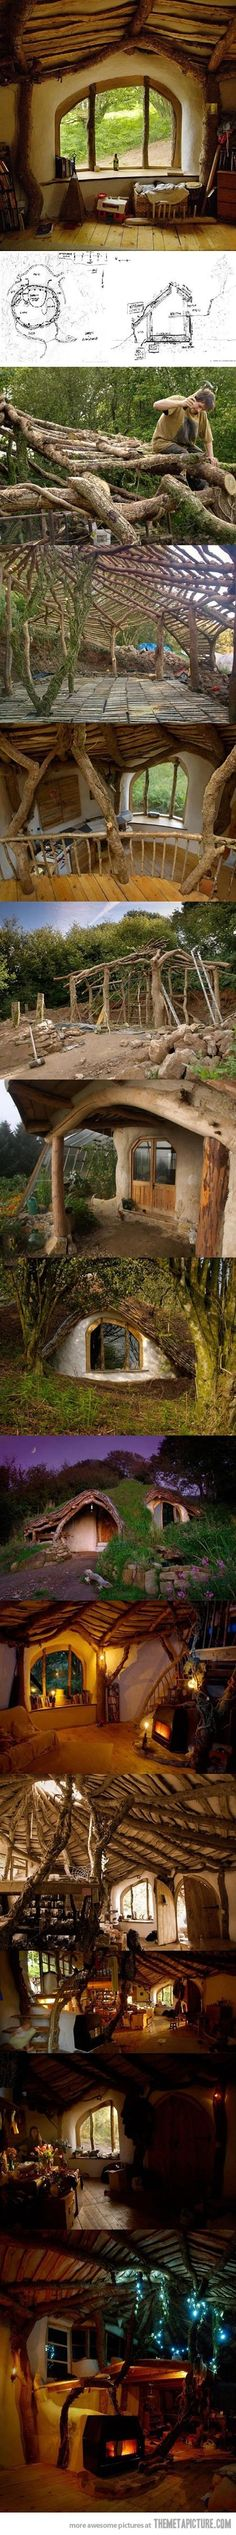 How to build a Hobbit house…for future reference.